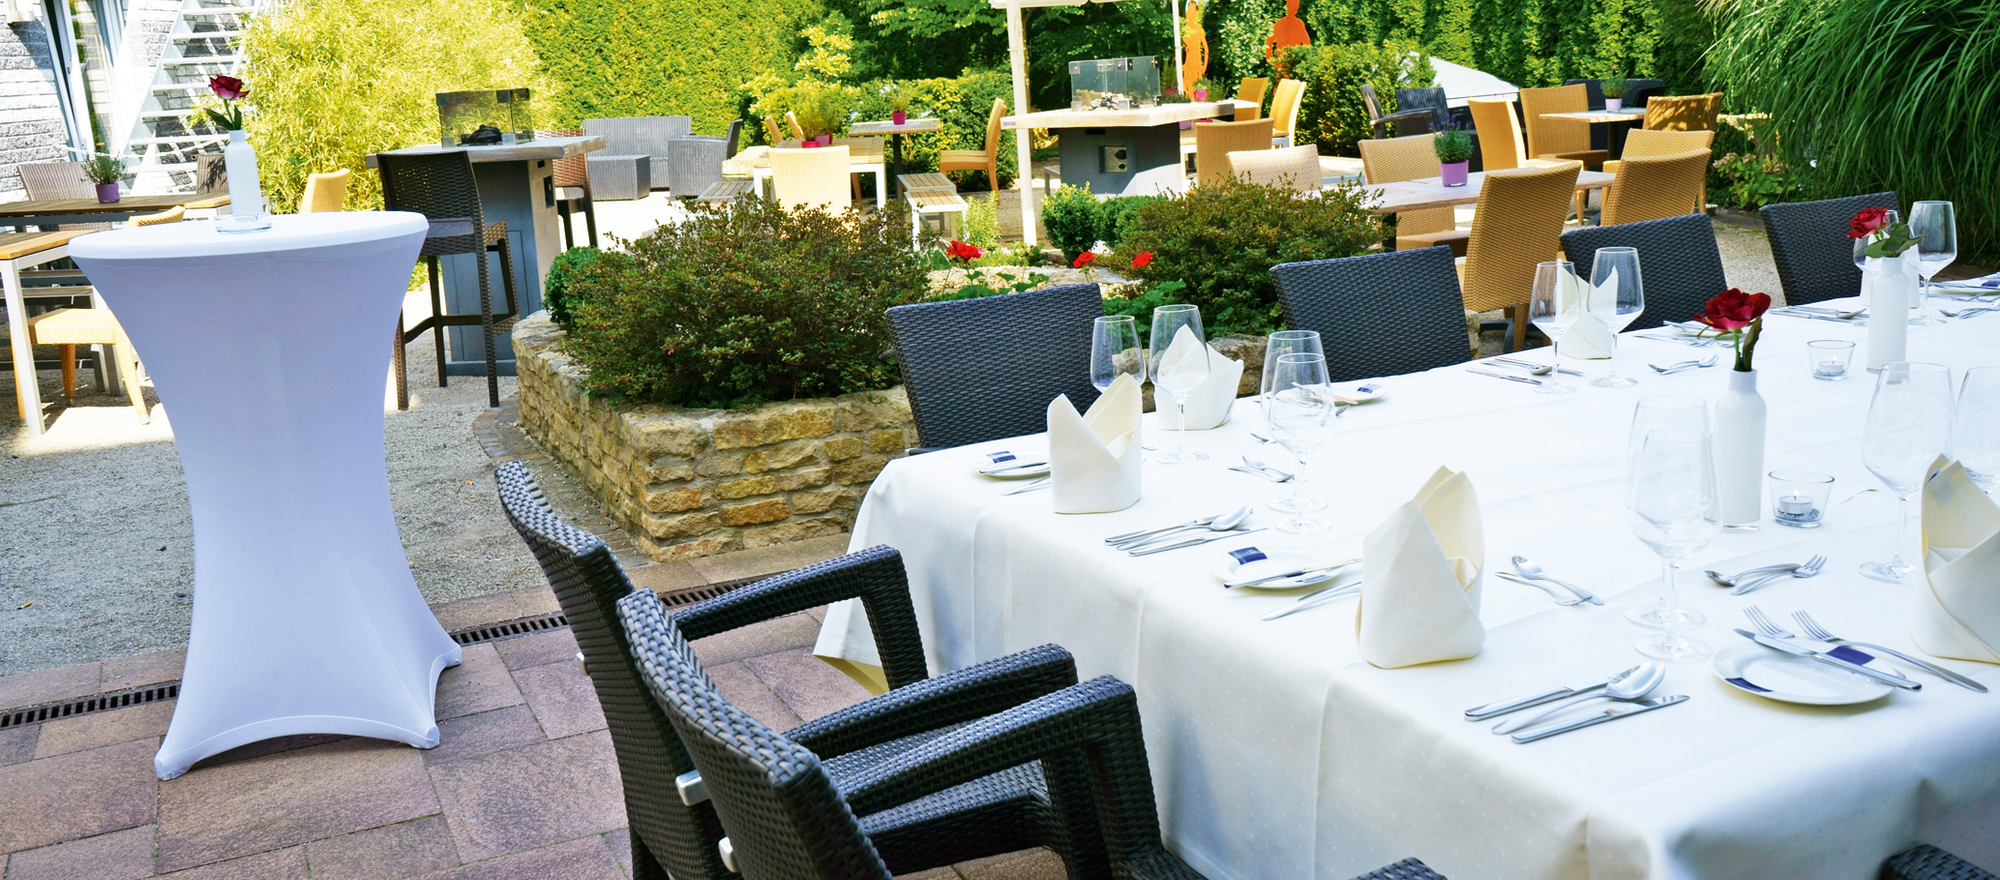 Terrace at the Ringhotel Appelbaum in Guetersloh, 4-star-hotel in the Teutoburg Forest